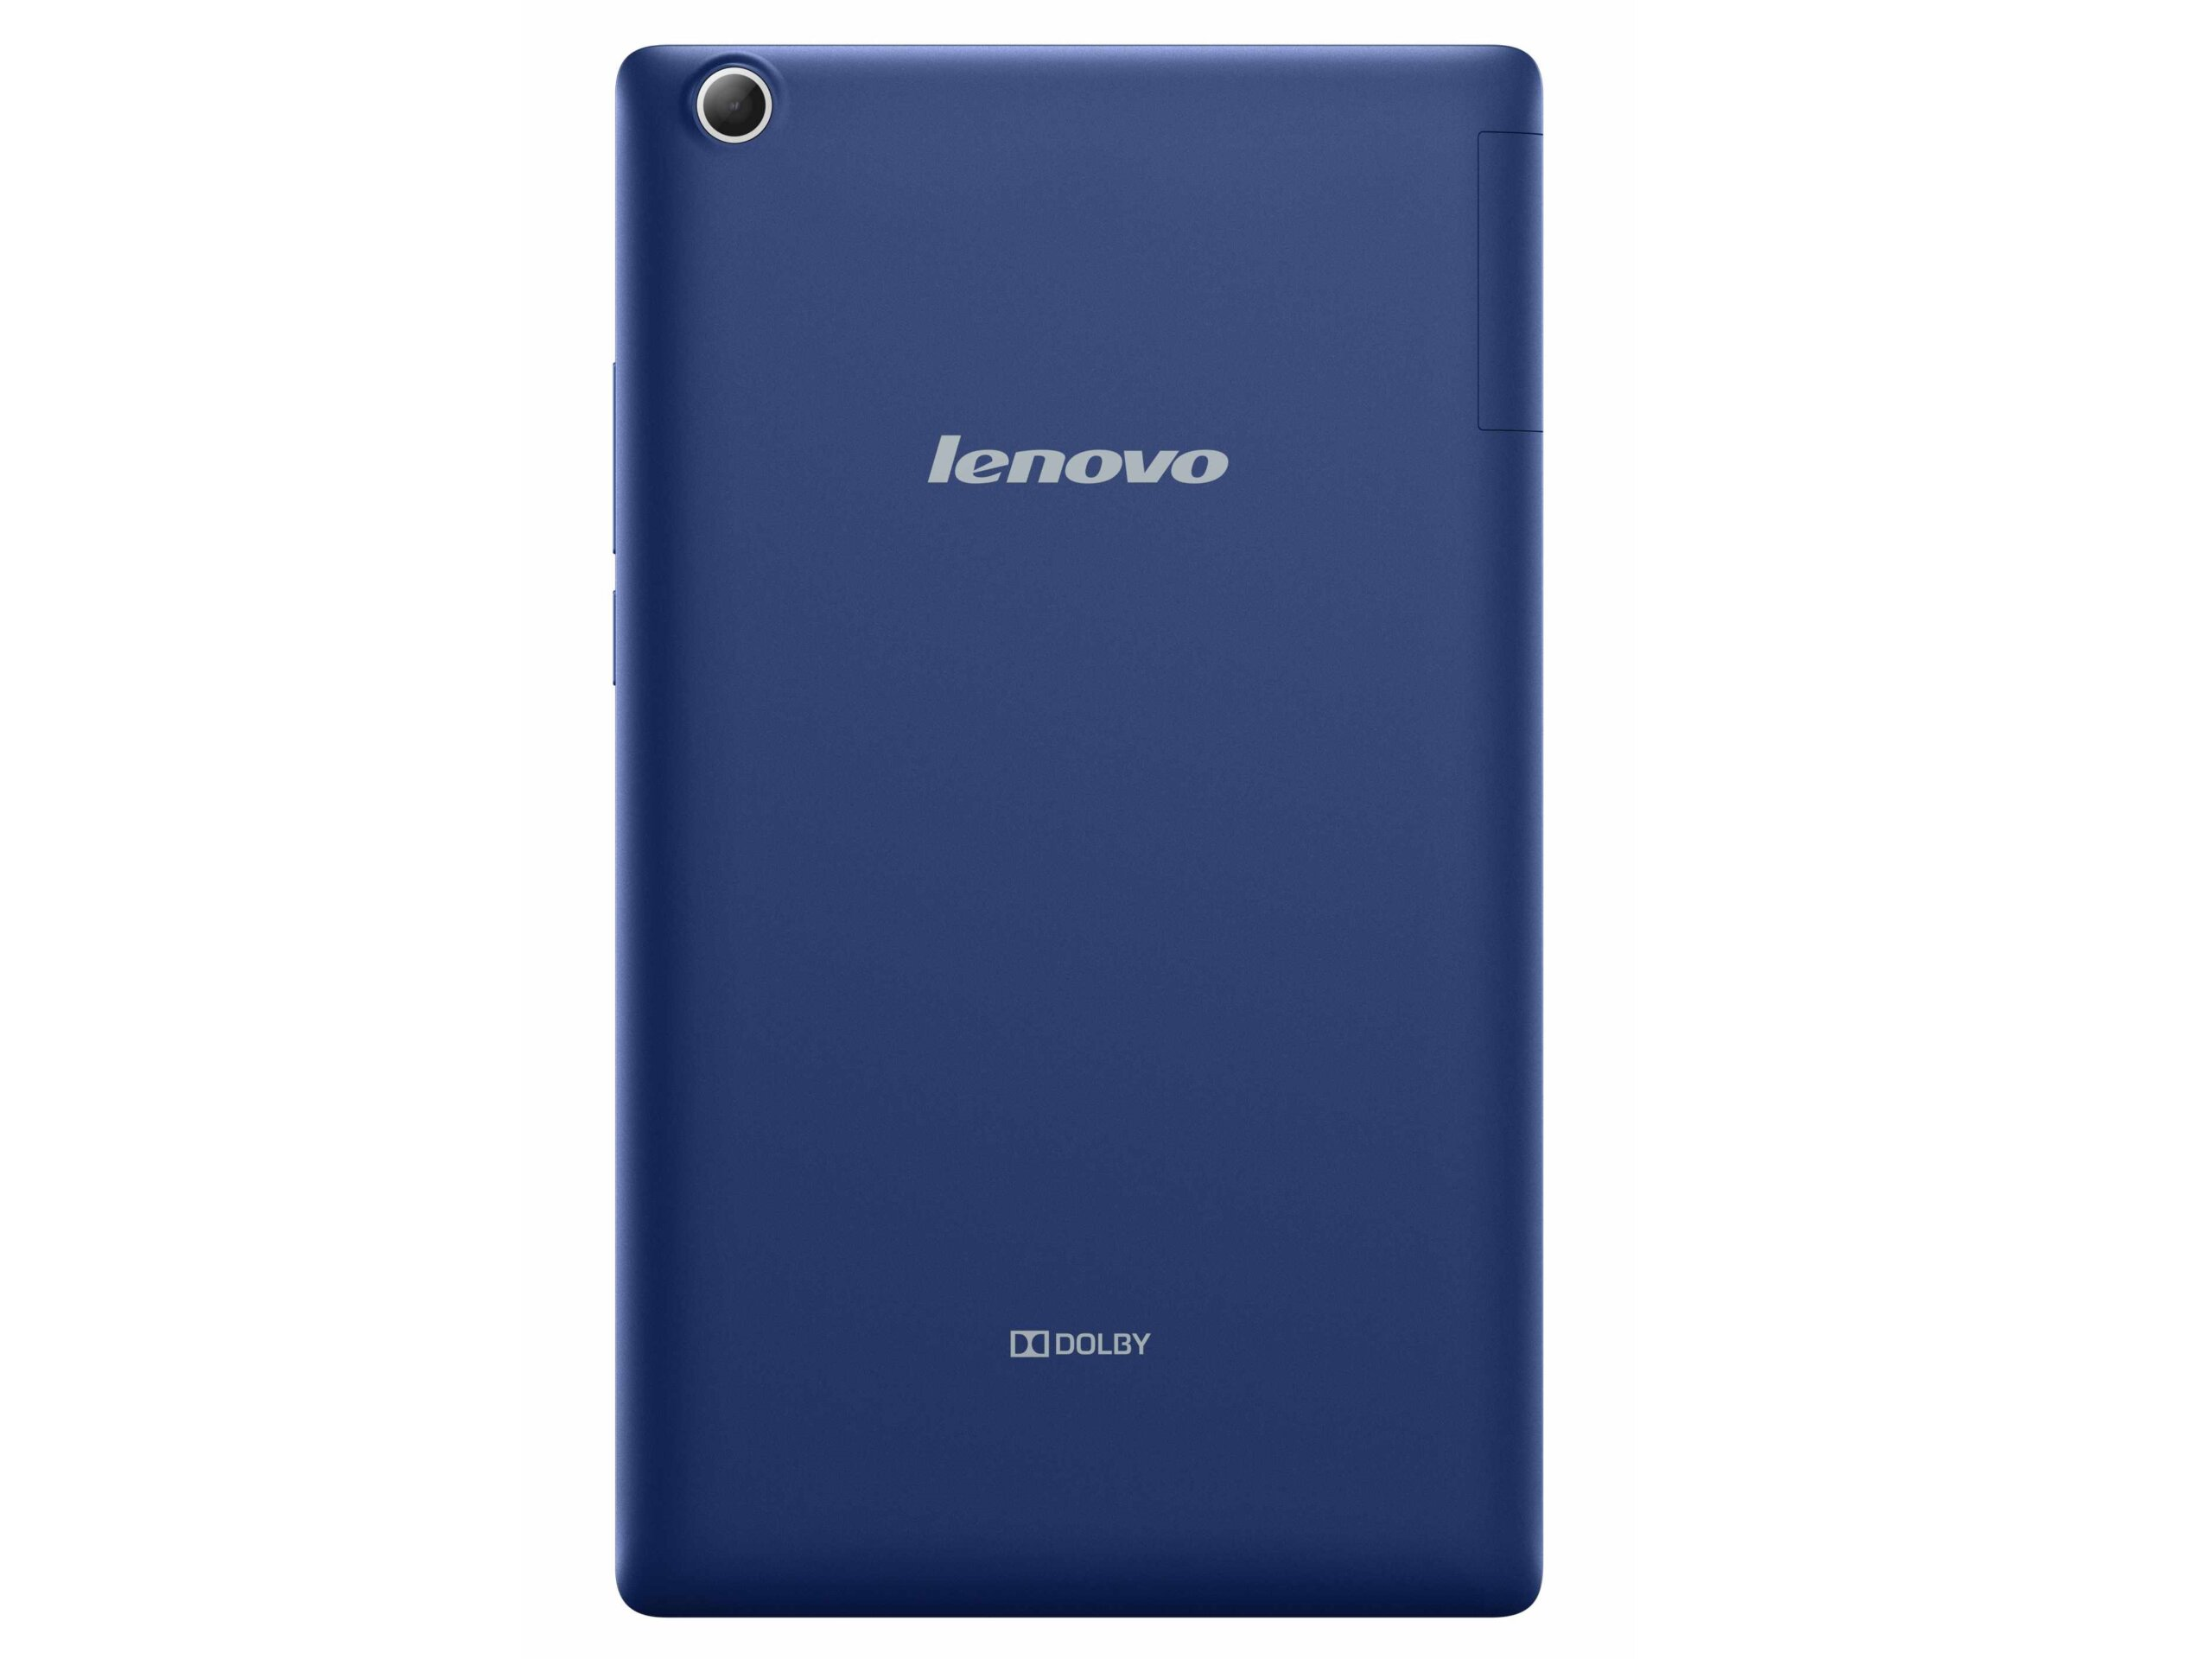 Lenovo TAB 2 A8 images and specs scaled